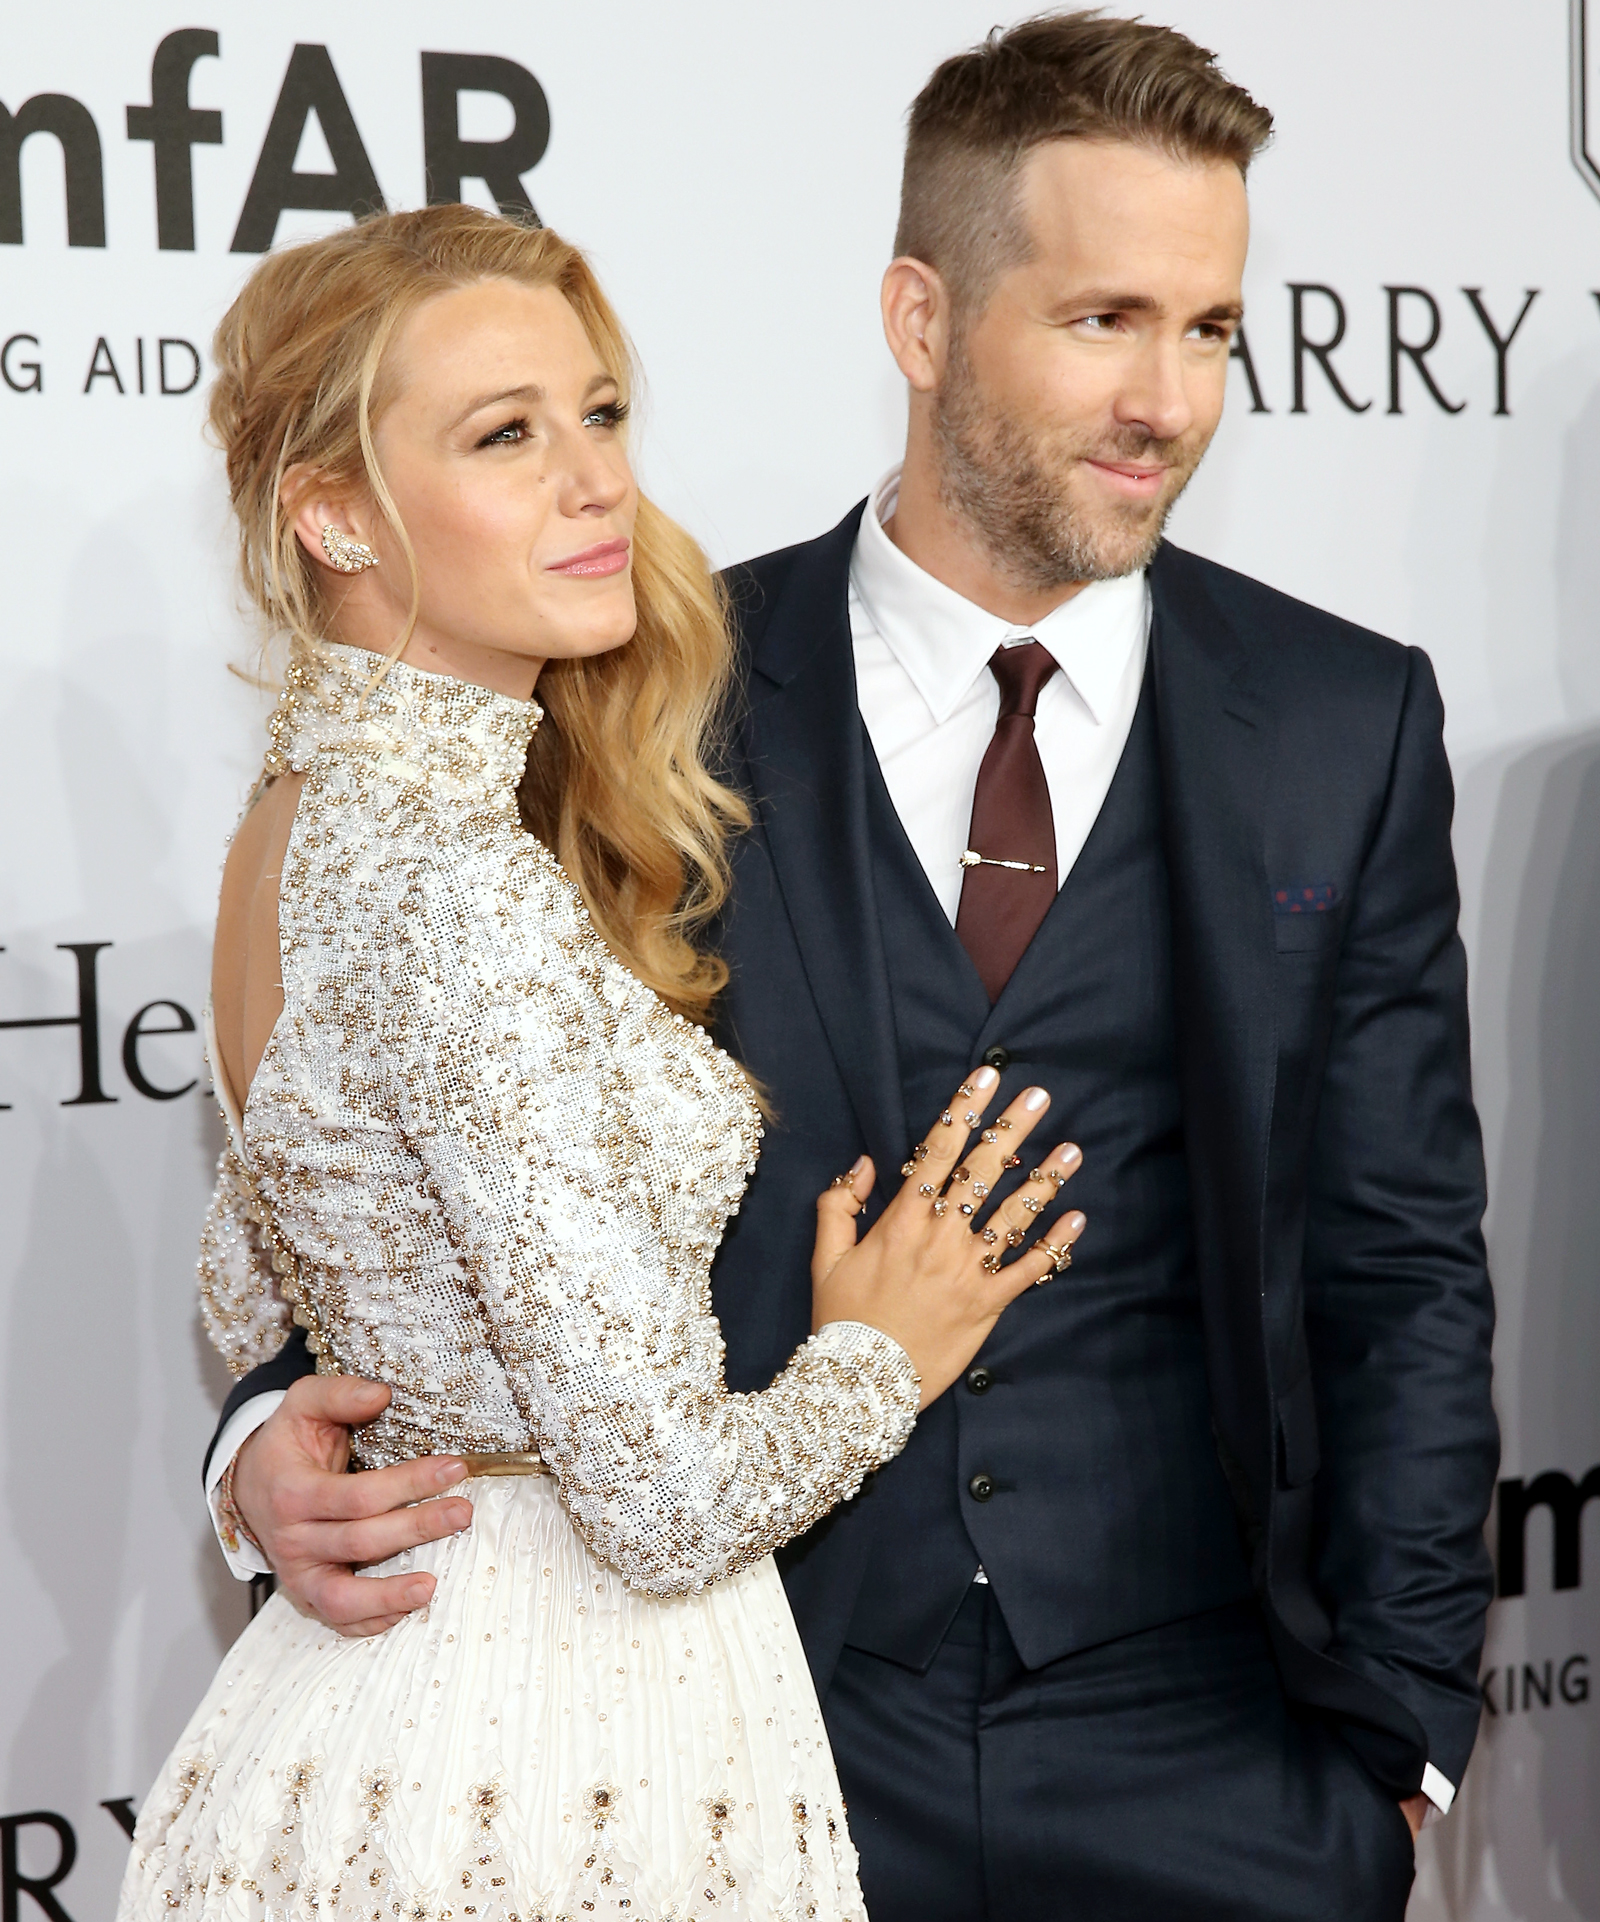 Ryan Reynolds Just Shared the Cutest Photo of His and Blake Lively's Dog Billie